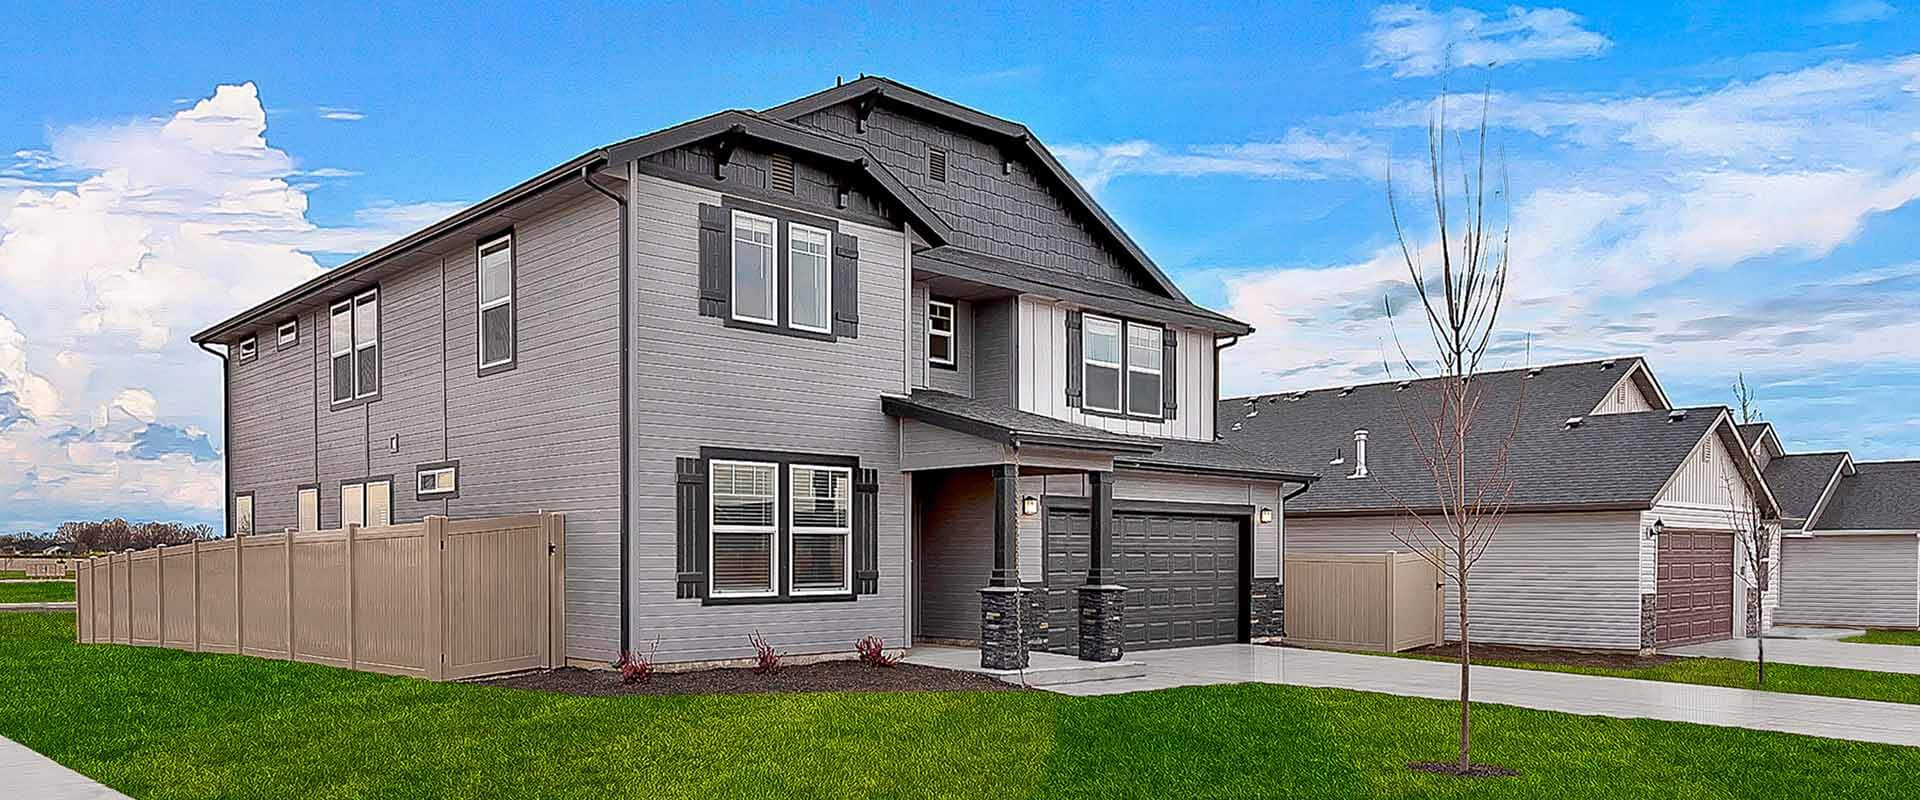 Windsor-Creek-East-New-Homes-Caldwell-Idaho2.jpg